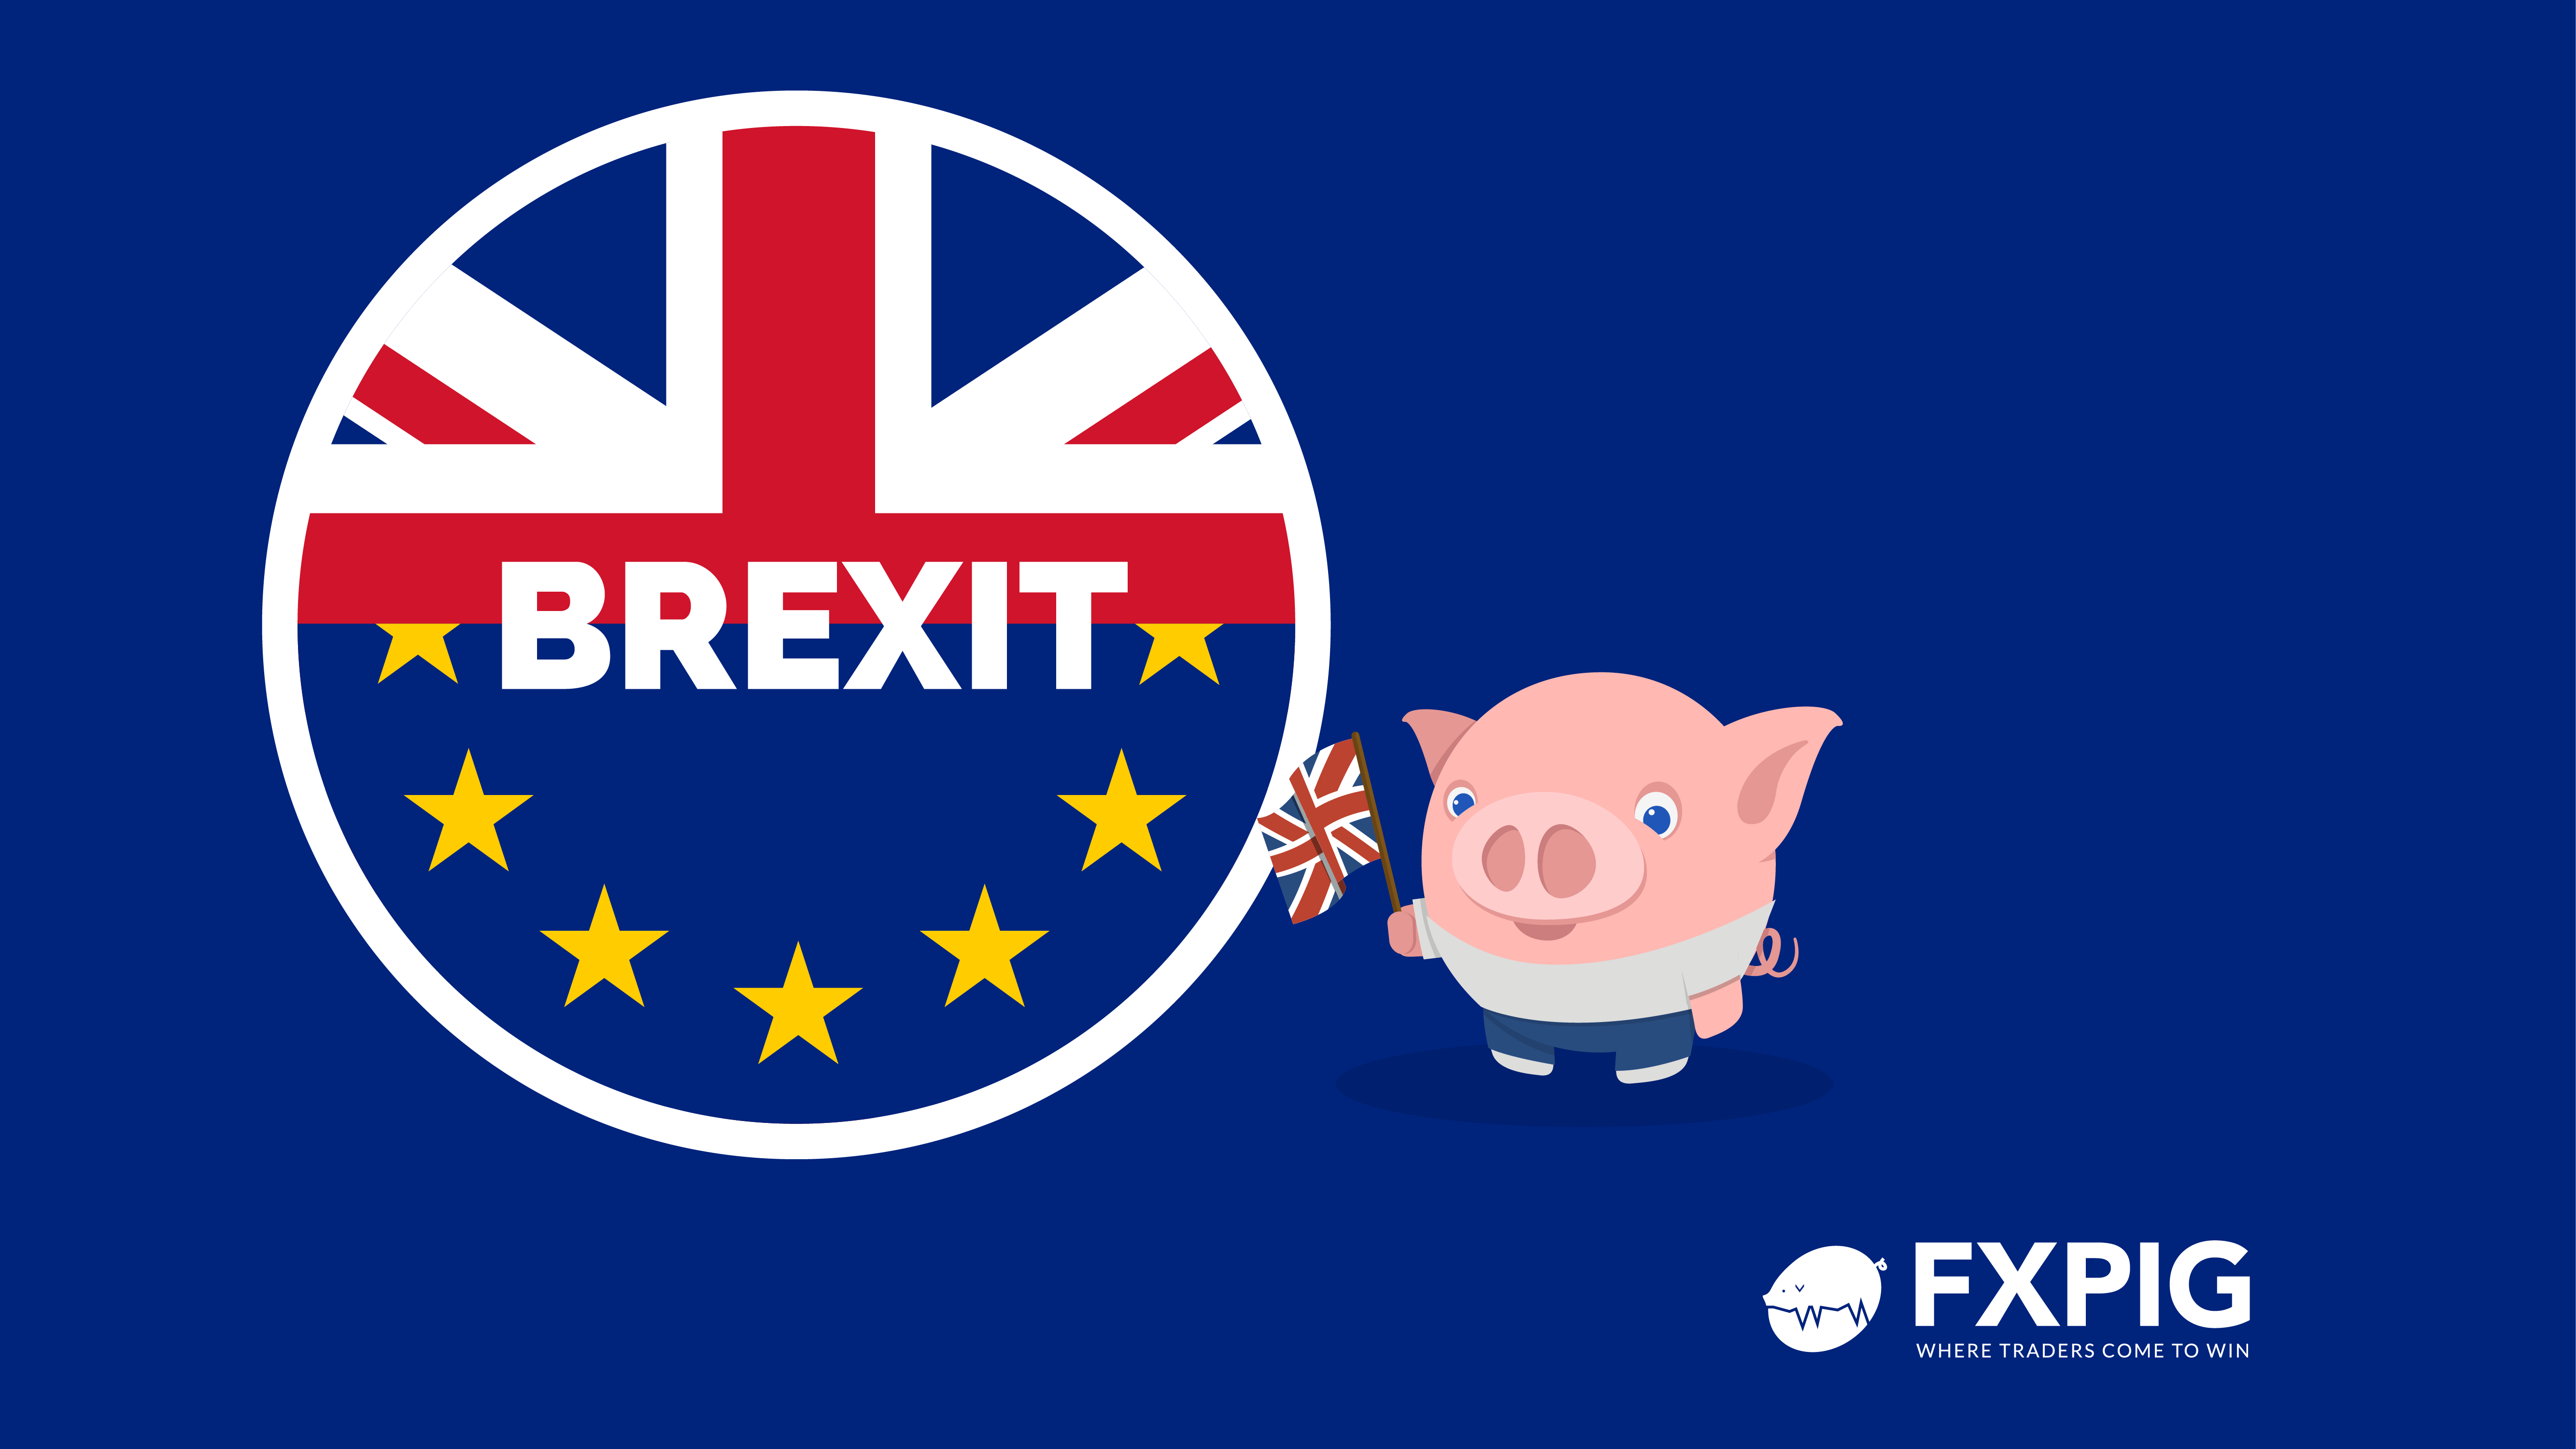 FOREX_Trading-news_BREXIT_FXPIG